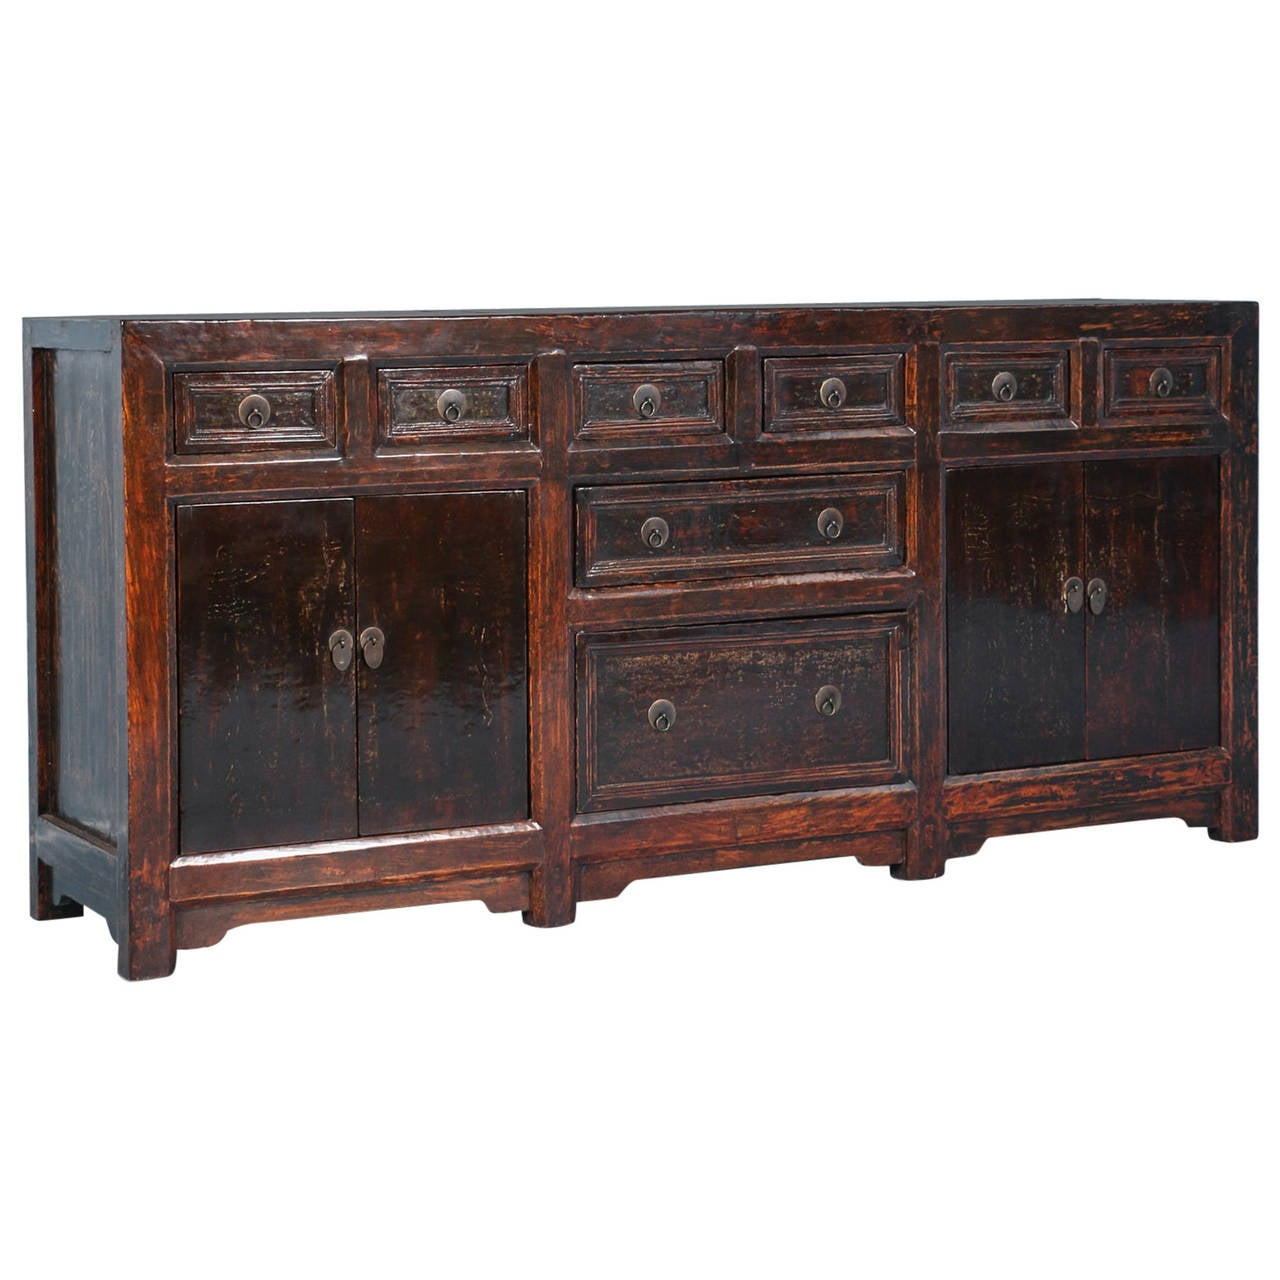 antique brown lacquered chinese sideboard circa 1840 at 1stdibs. Black Bedroom Furniture Sets. Home Design Ideas